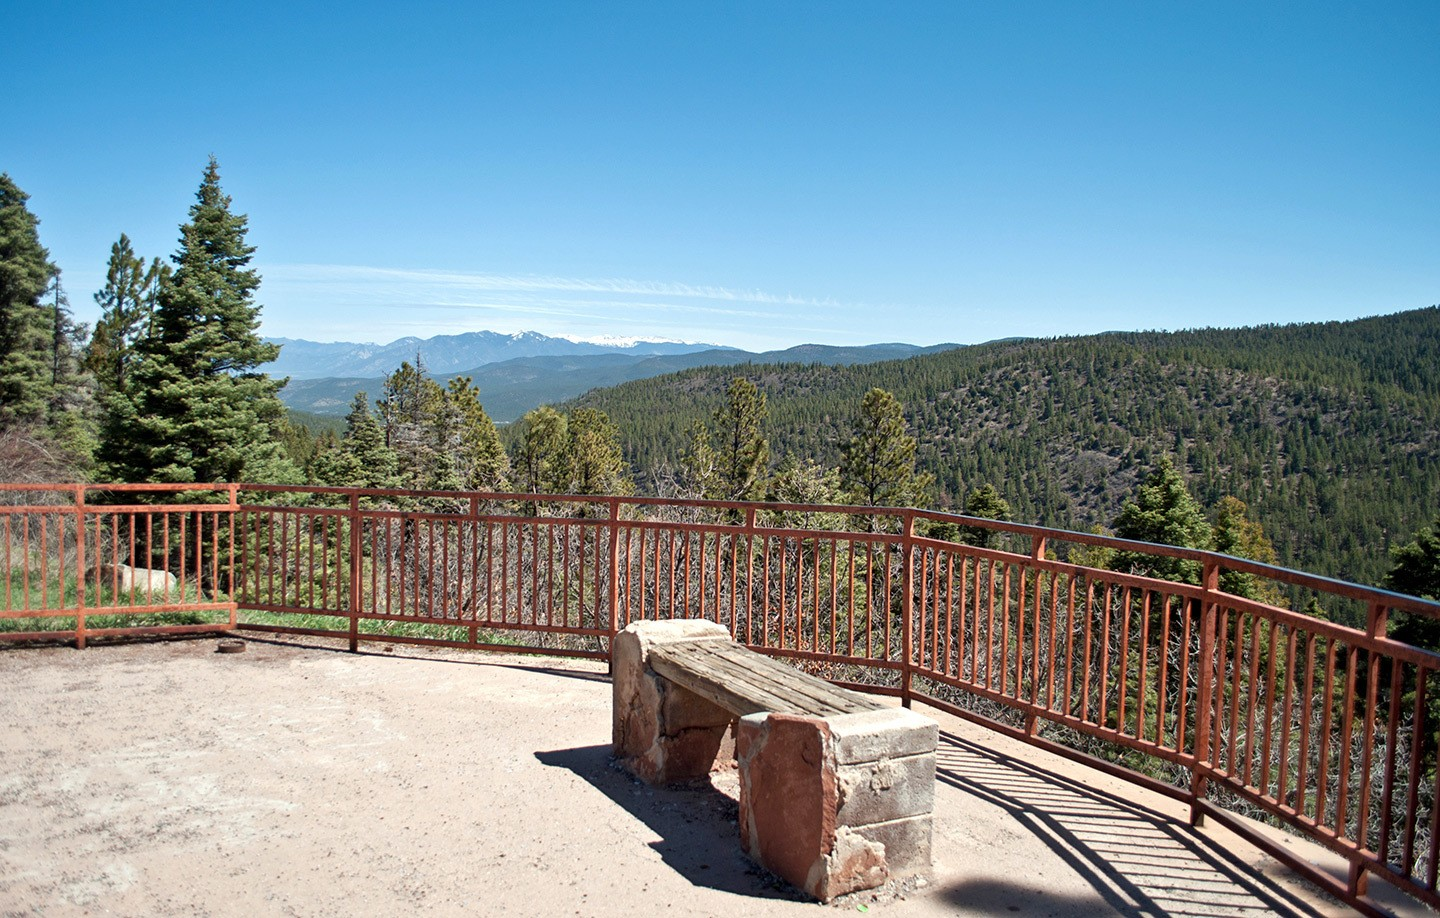 The High Road to Taos scenic drive, New Mexico